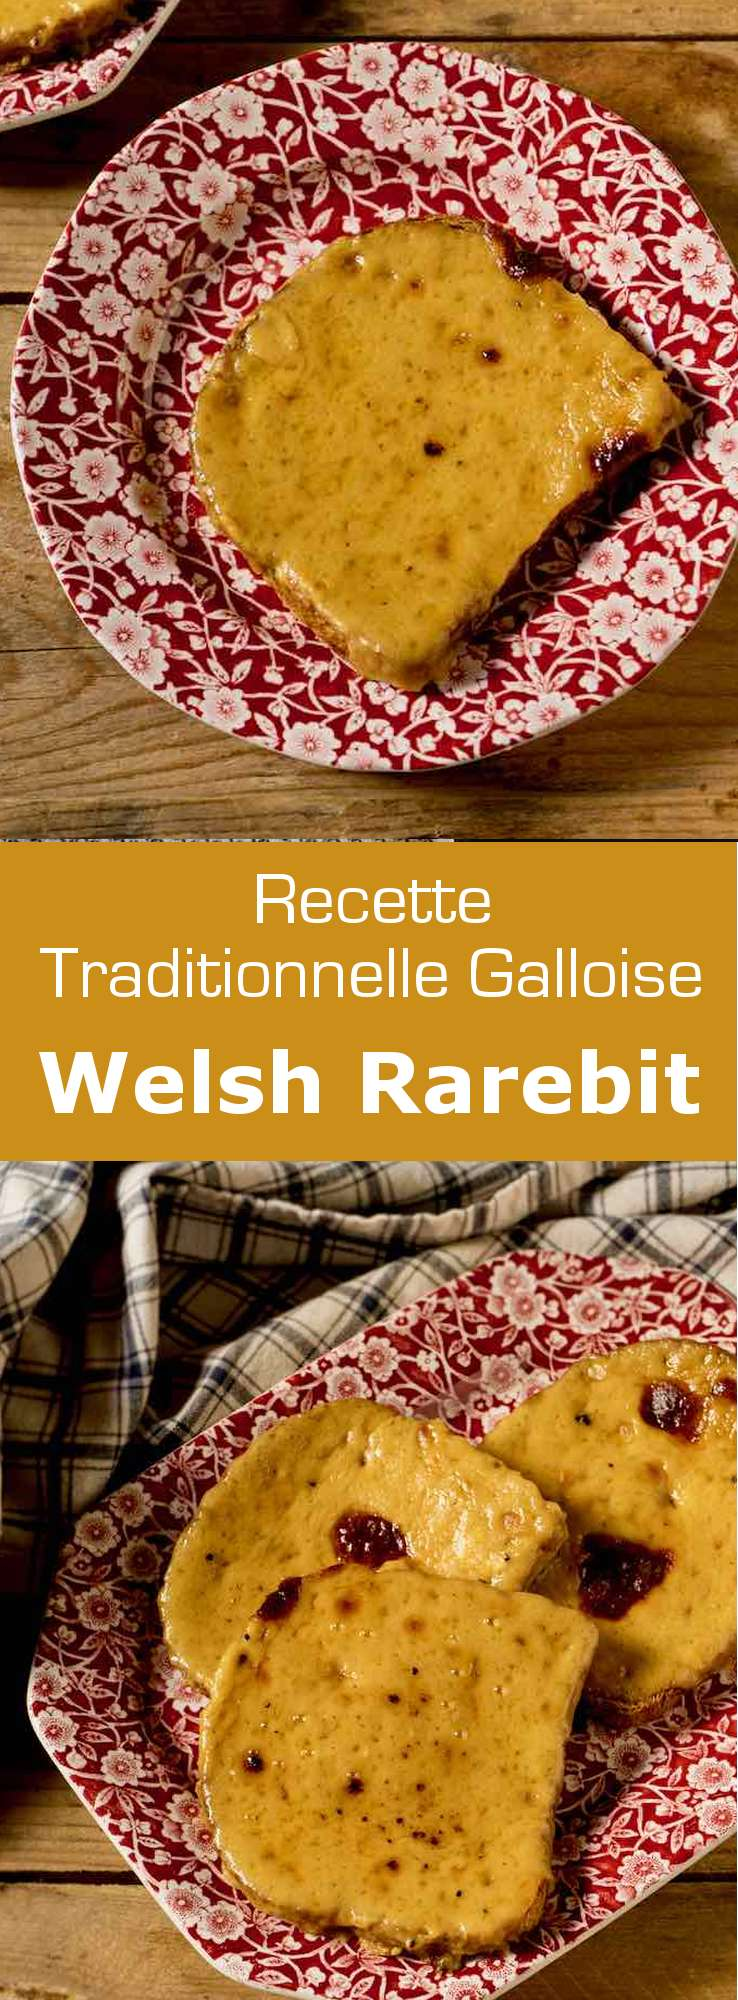 Le welsh rarebit ou croque gallois est un plat d'origine galloise, à base de cheddar traditionnellement servi sur une tranche de pain grillé, le tout passé au four. #RoyaumeUni #Angleterre #PaysDeGalles #RecetteAnglaise #RecetteBritannique #RecetteGalloise #CuisineAnglaise #CuisineBritannique #CuisineGalloise #CuisineDuMonde #196flavors